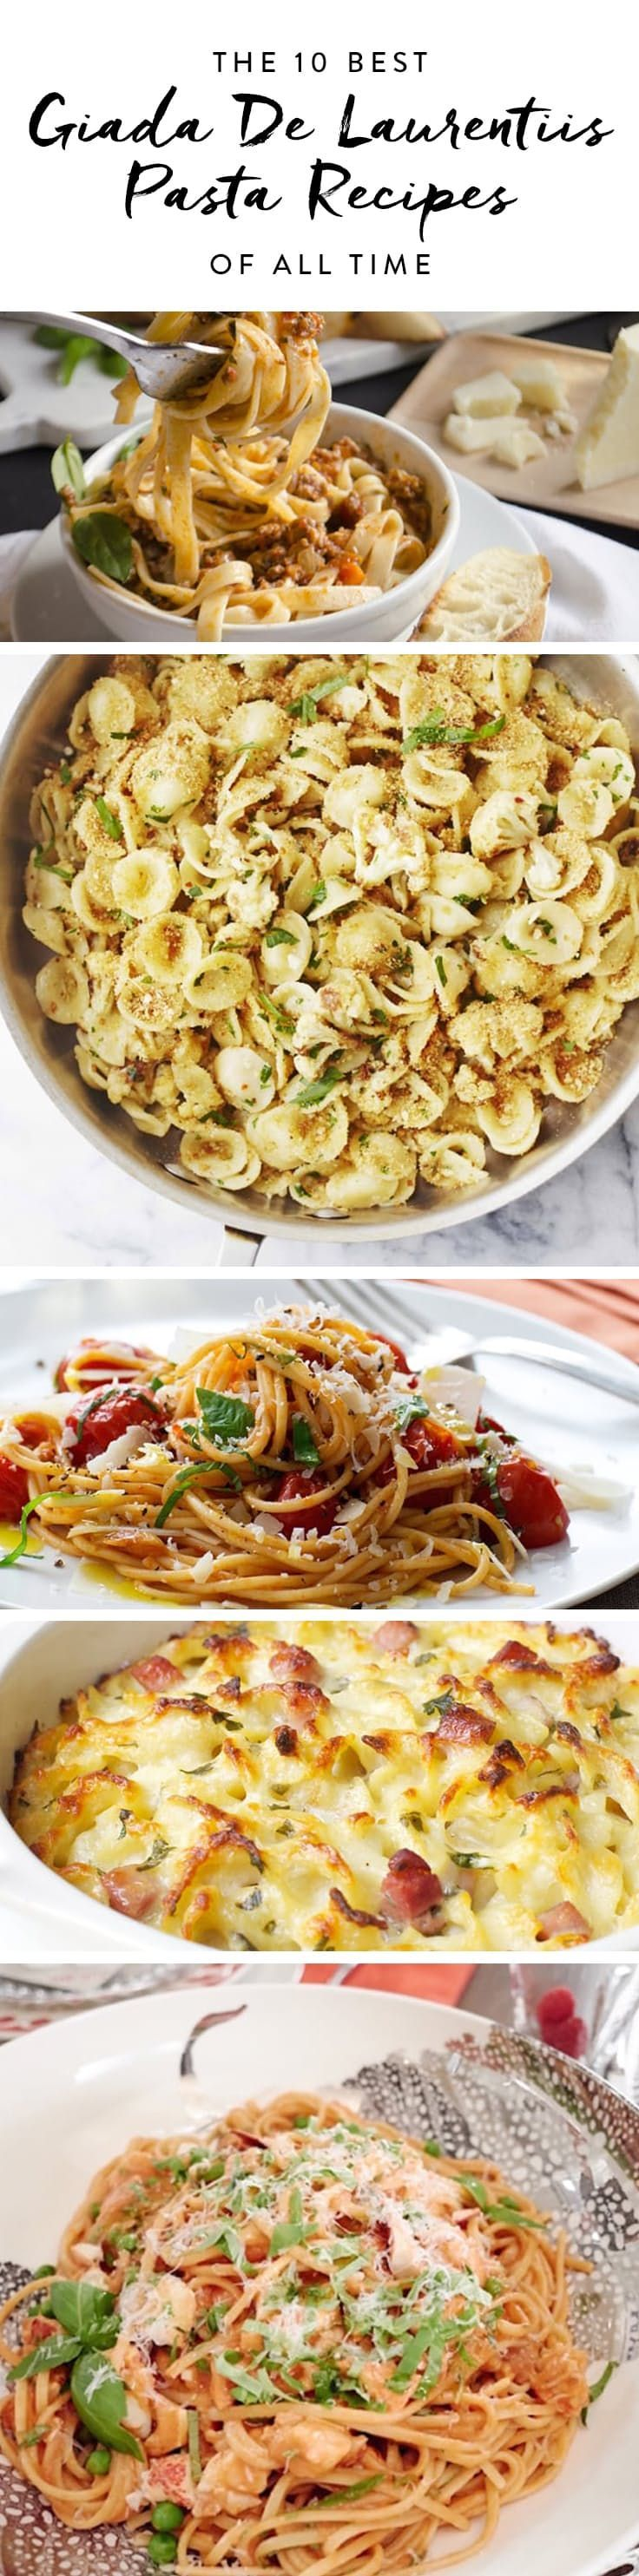 The 10 Best Giada De Laurentiis Pasta Recipes of All Time  via @PureWow